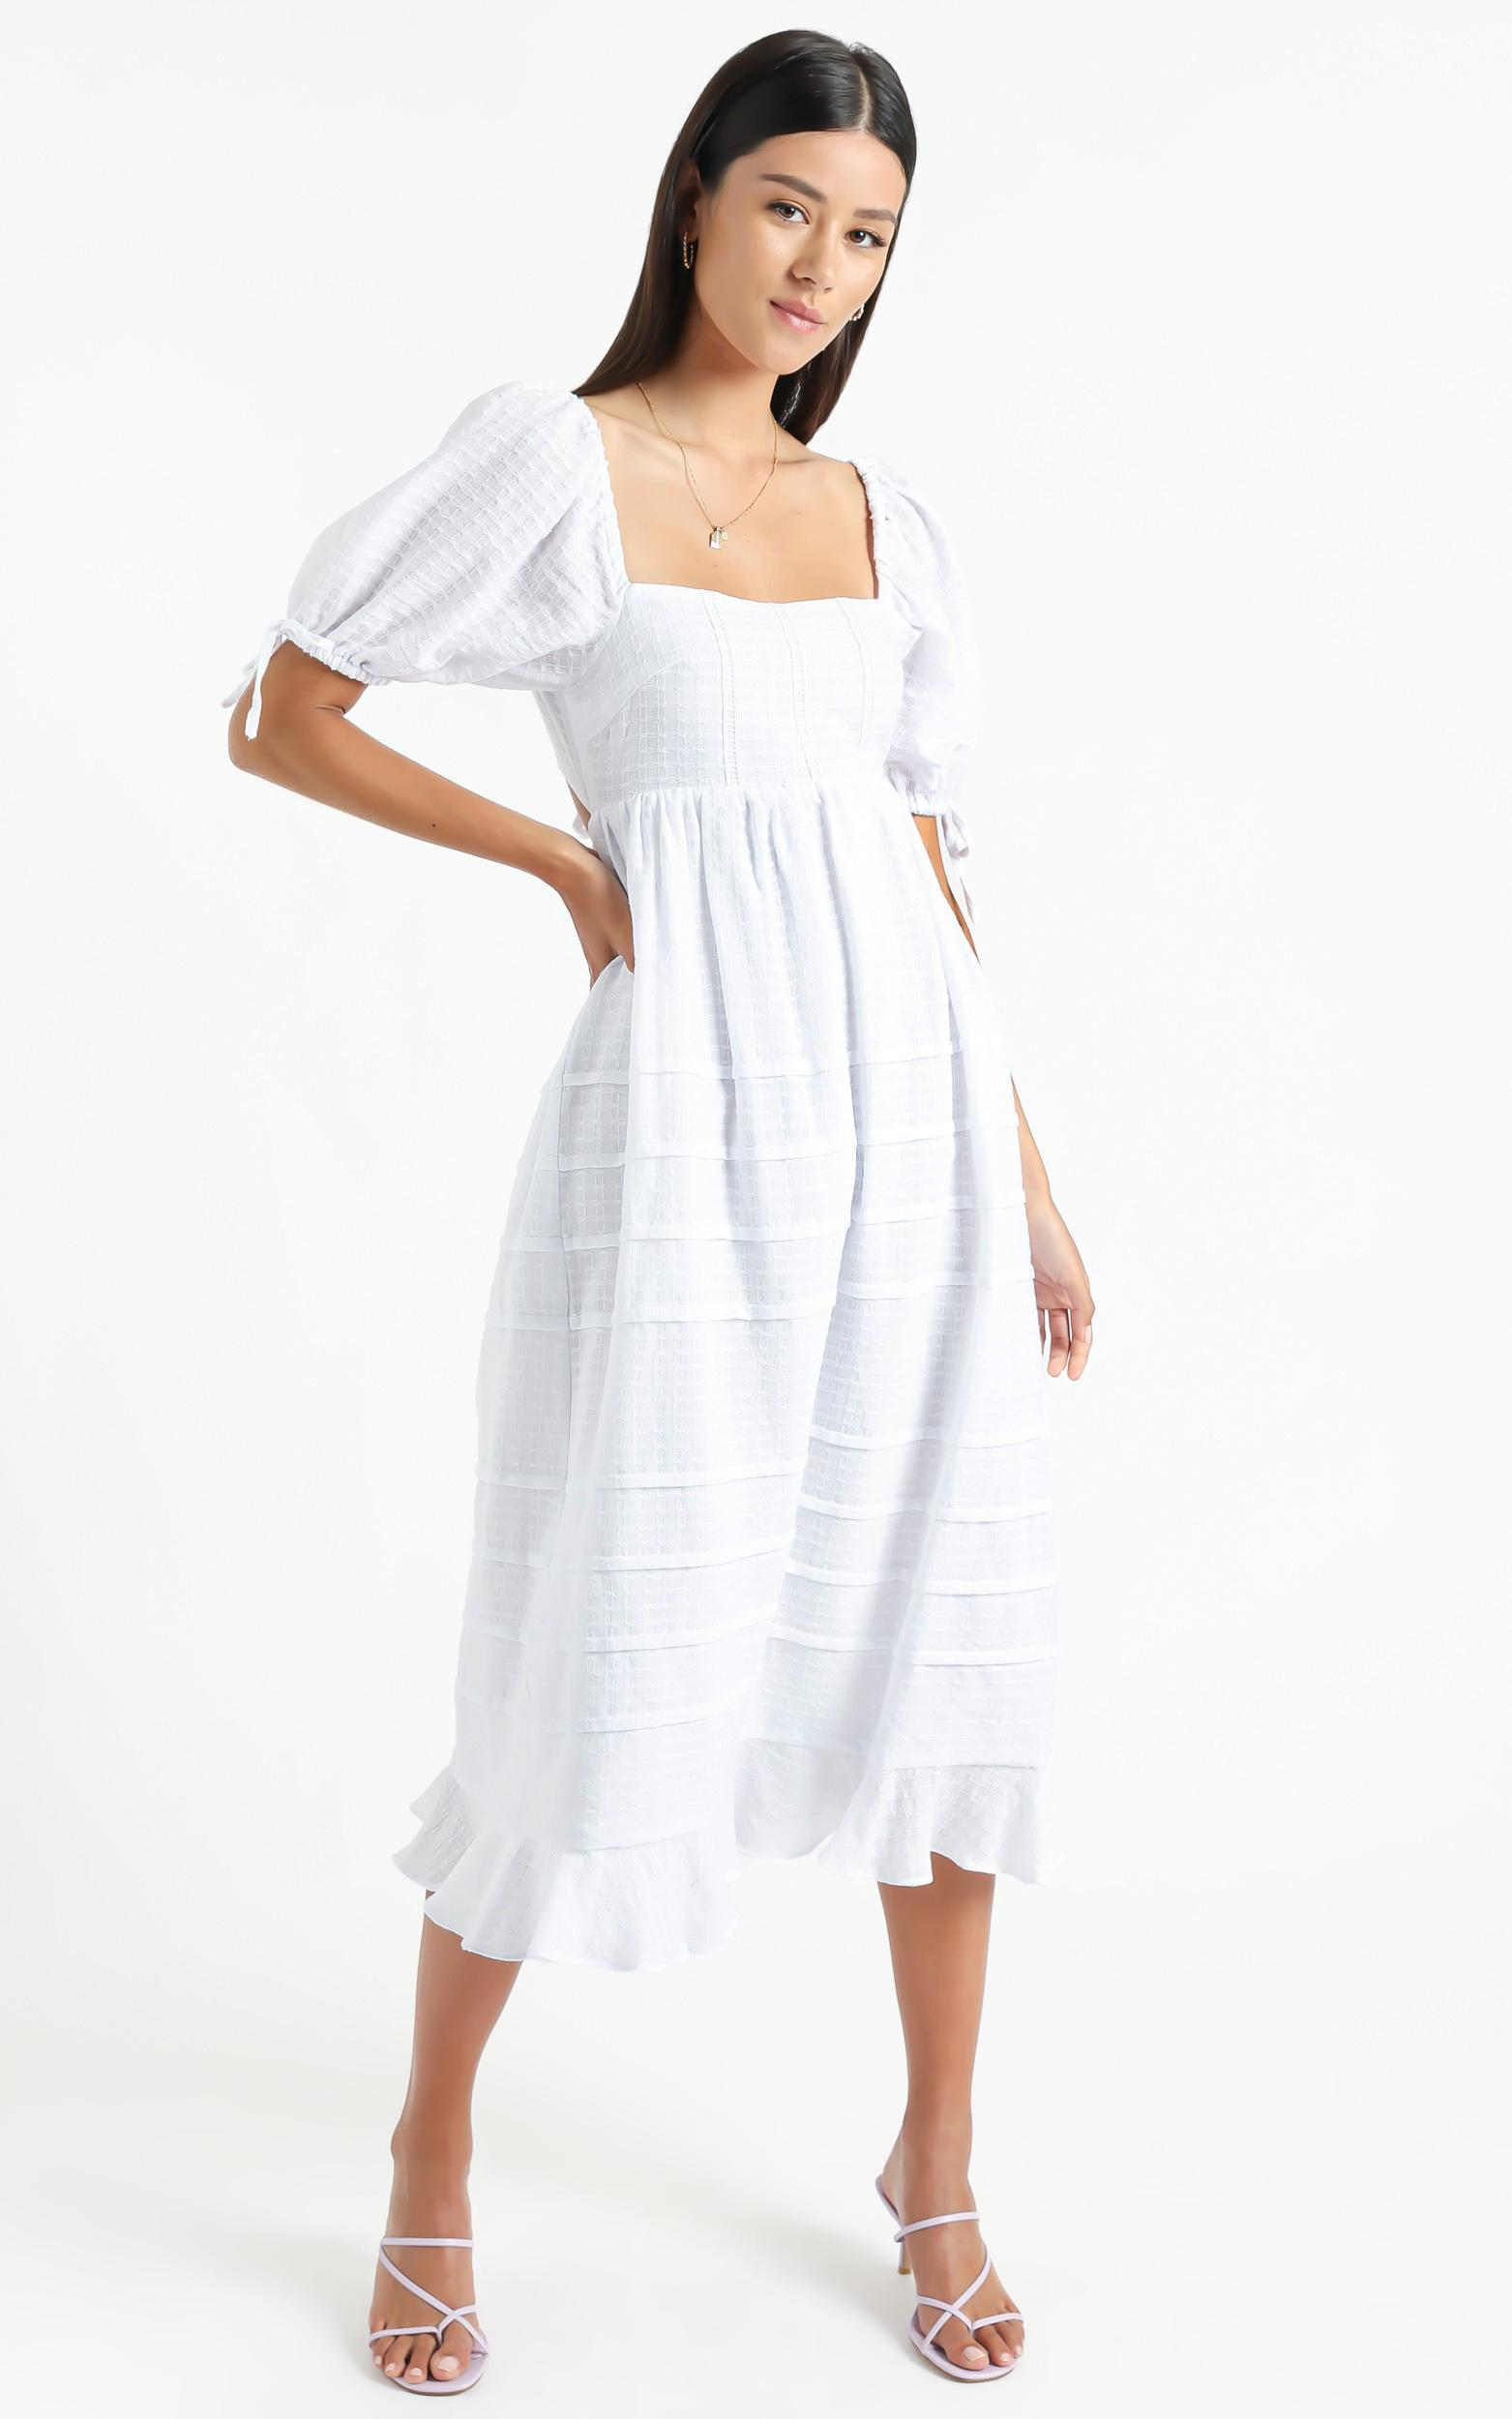 Electra Dress in White - 6 (XS), White, hi-res image number null